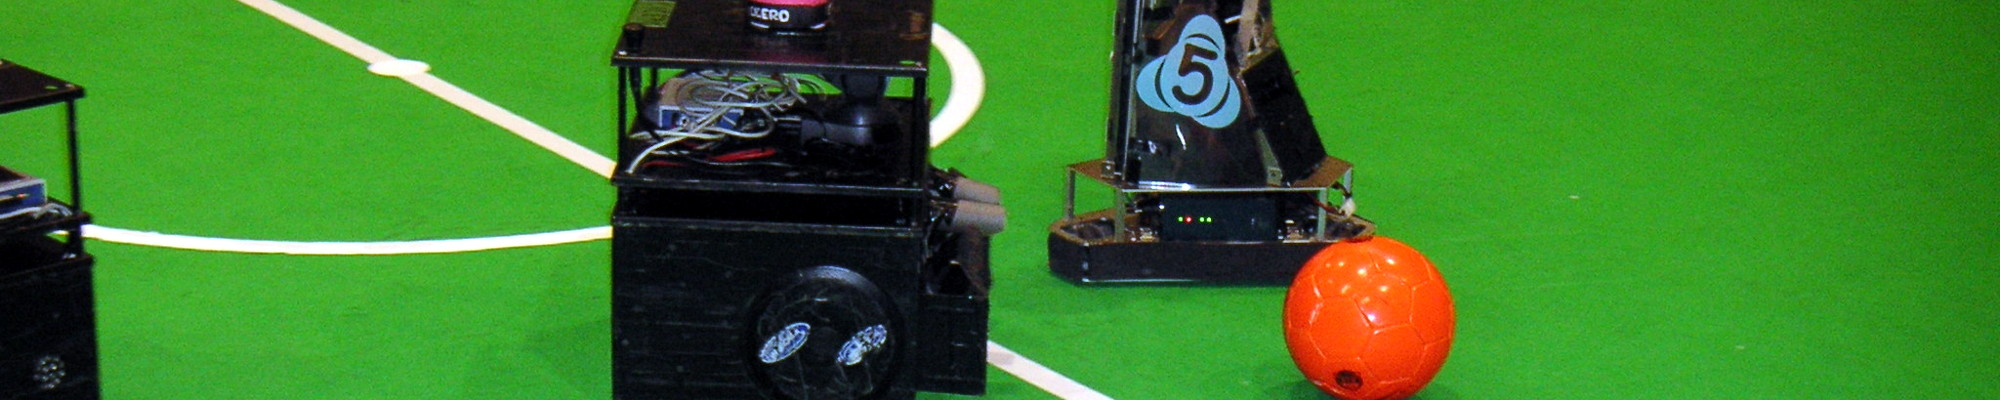 AllemaniACs' Cicero approaching the ball (RoboCup 2006, Bremen, Germany)